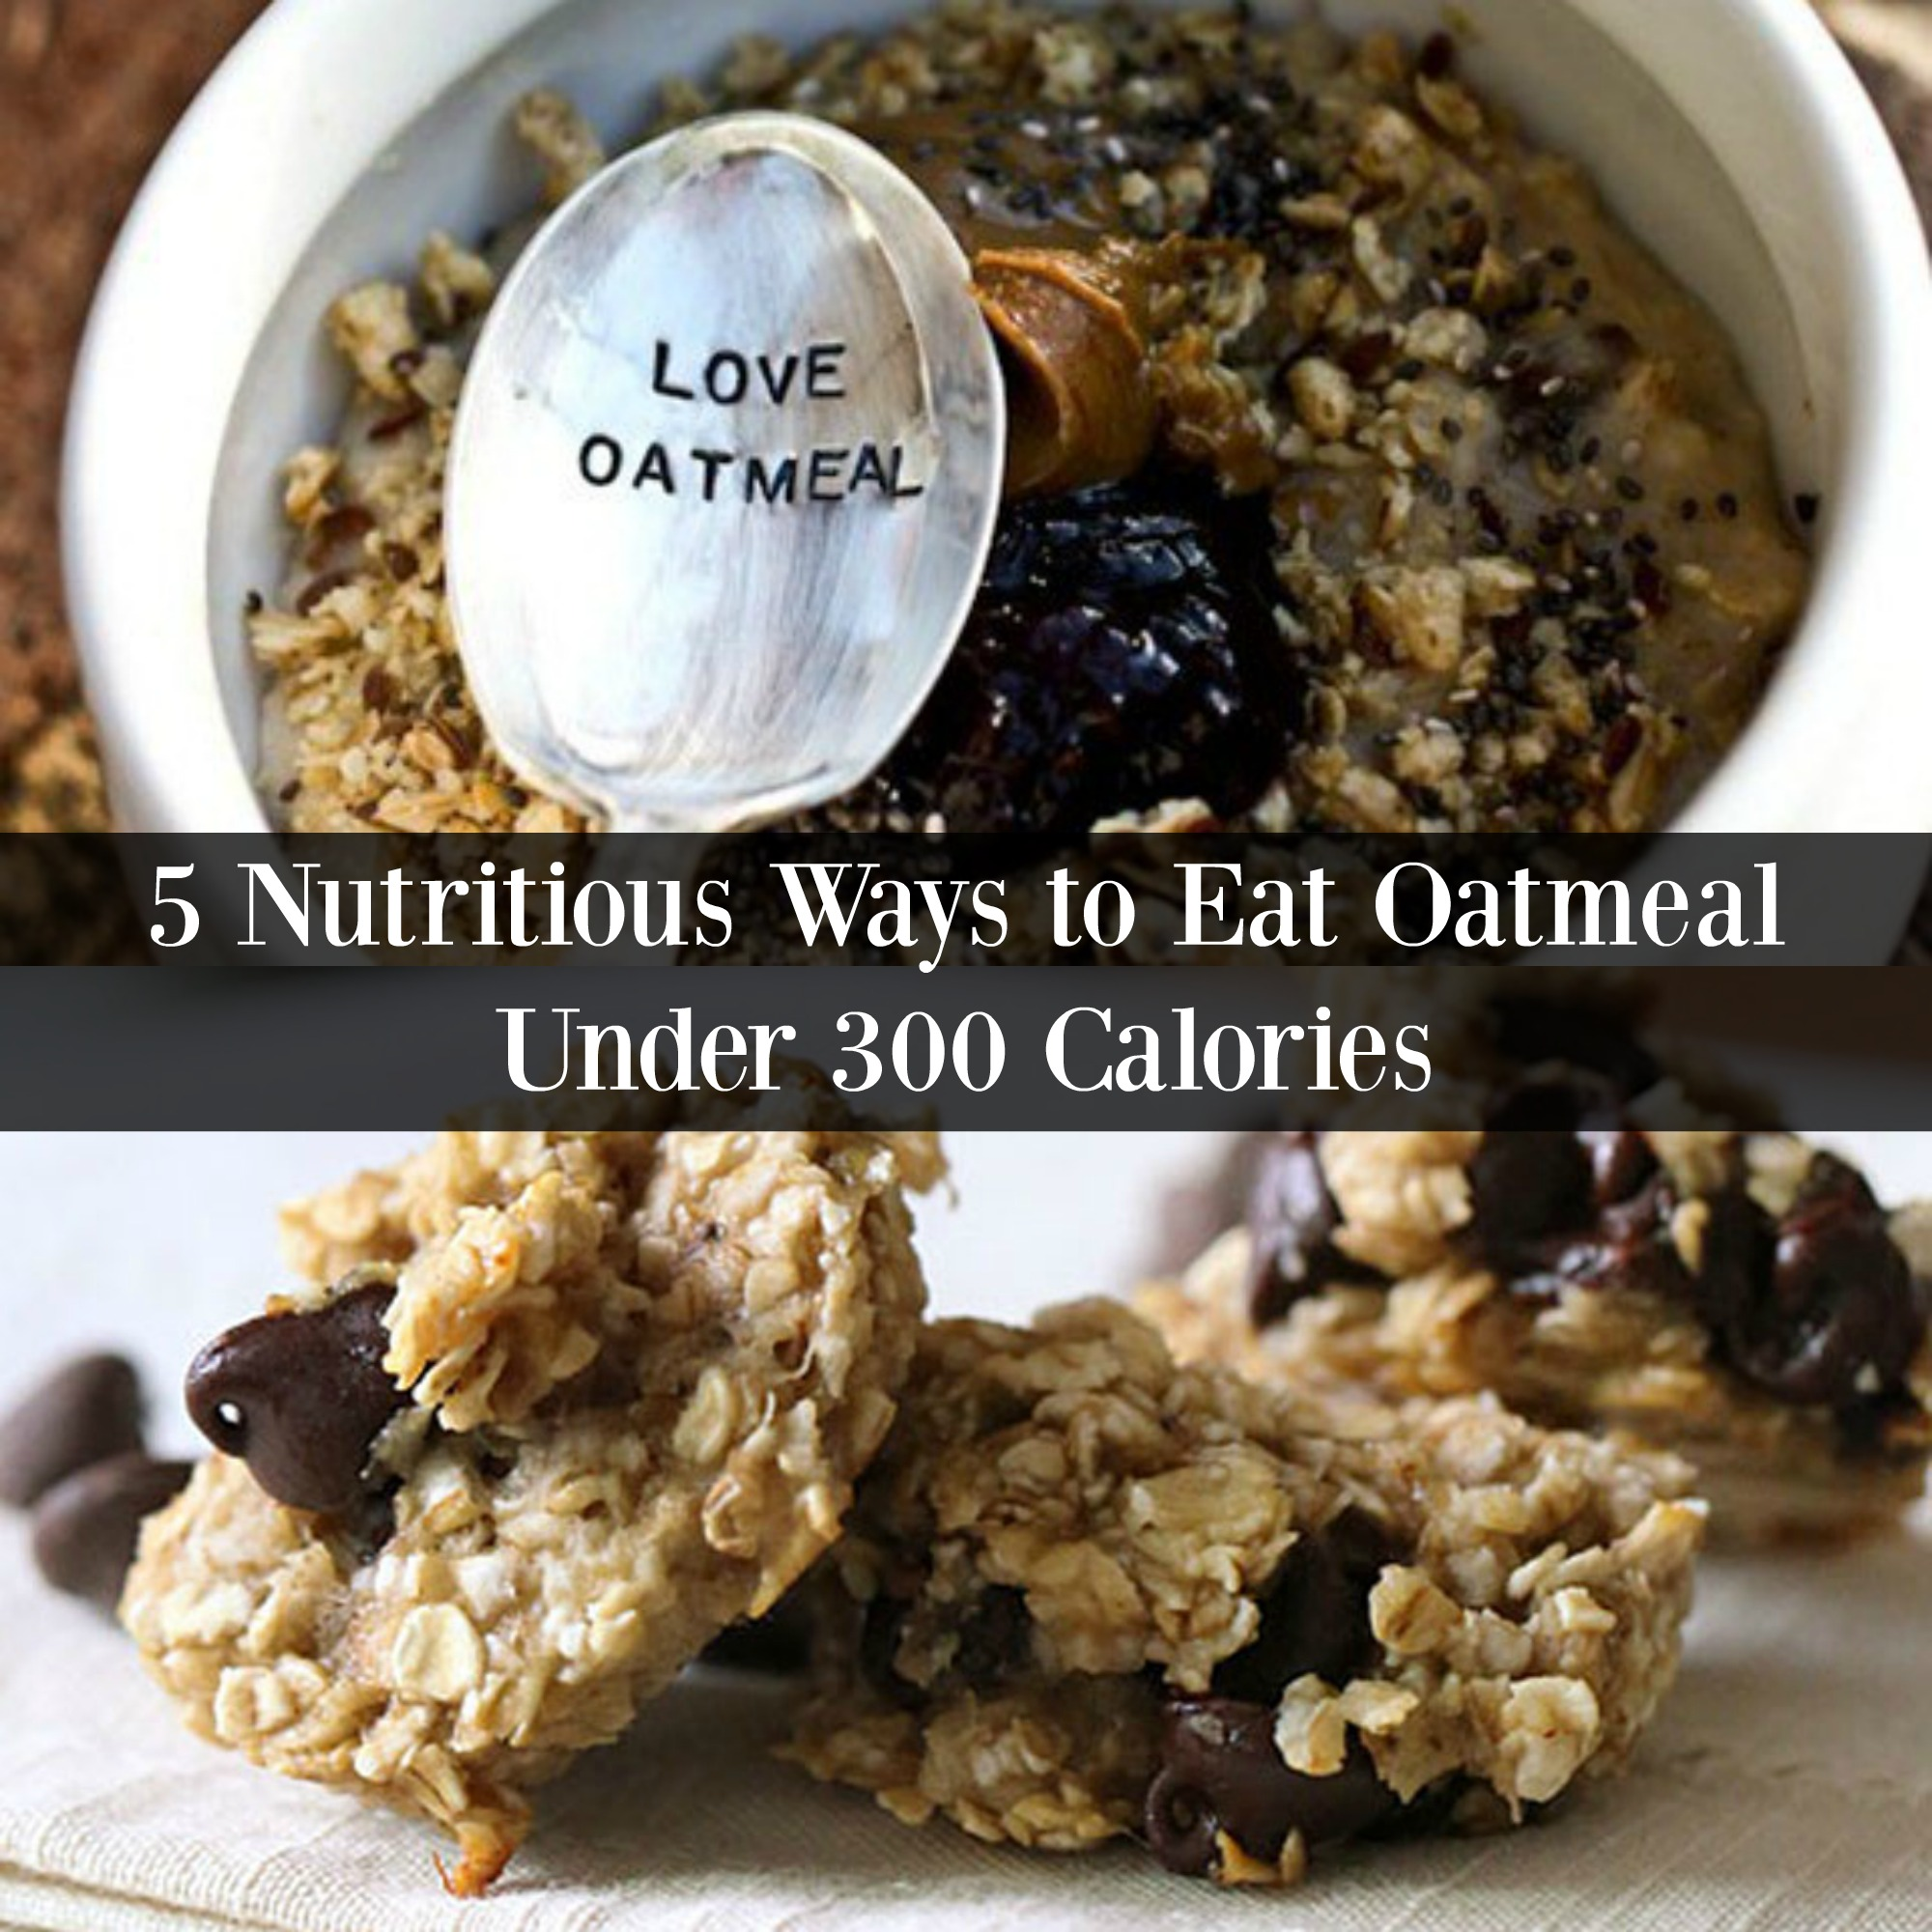 5 Nutritious Ways to Eat Oatmeal Under 300 Calories